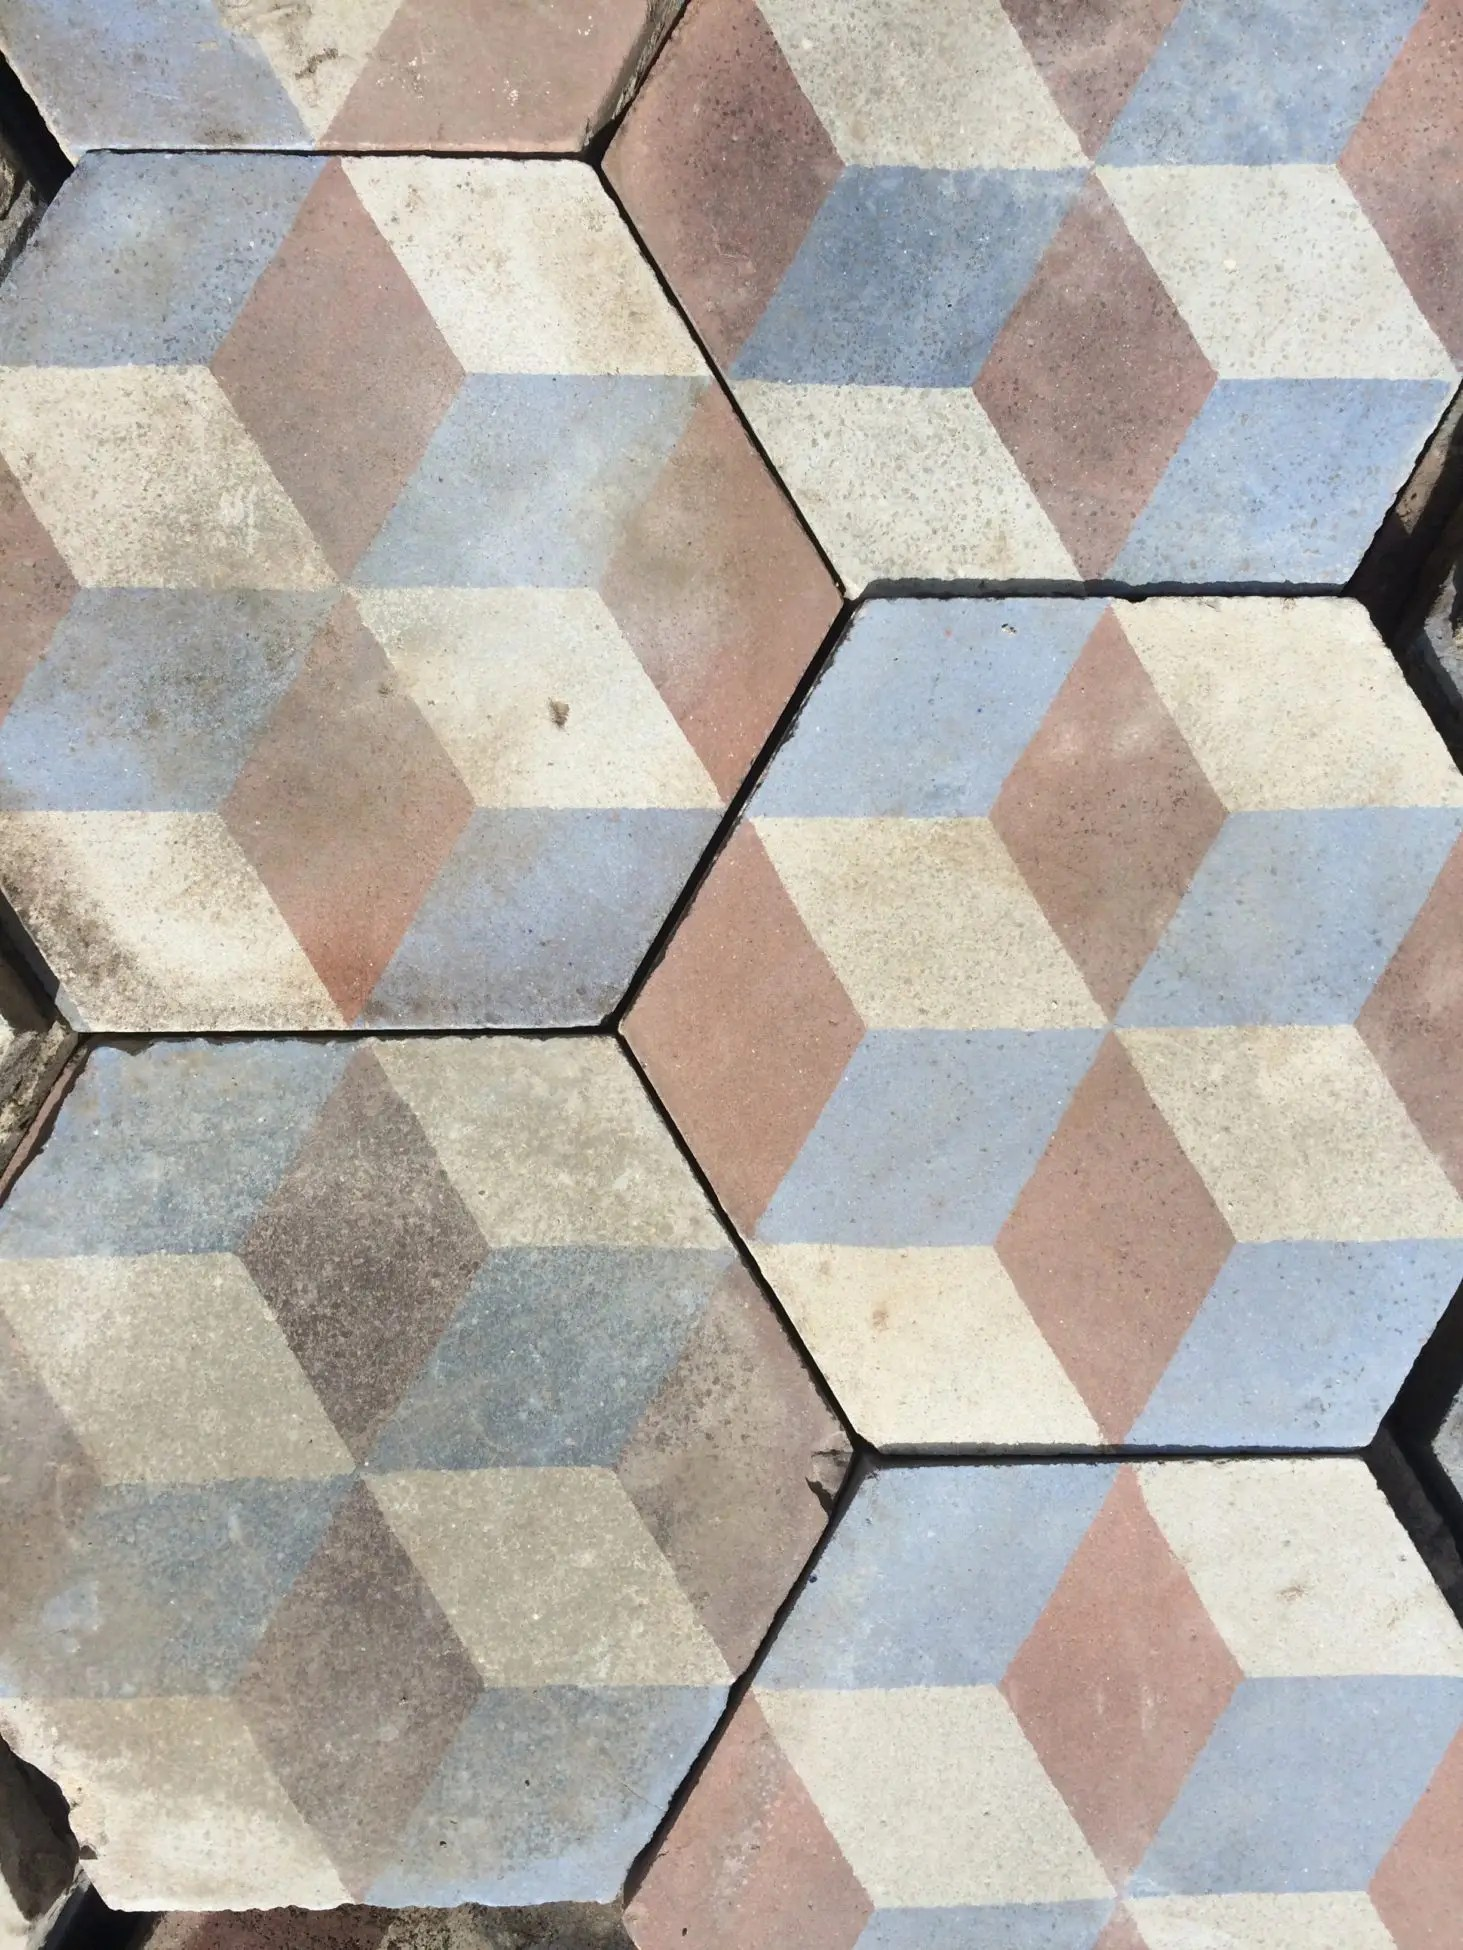 beau motif carreau de ciment ancien hexagonal